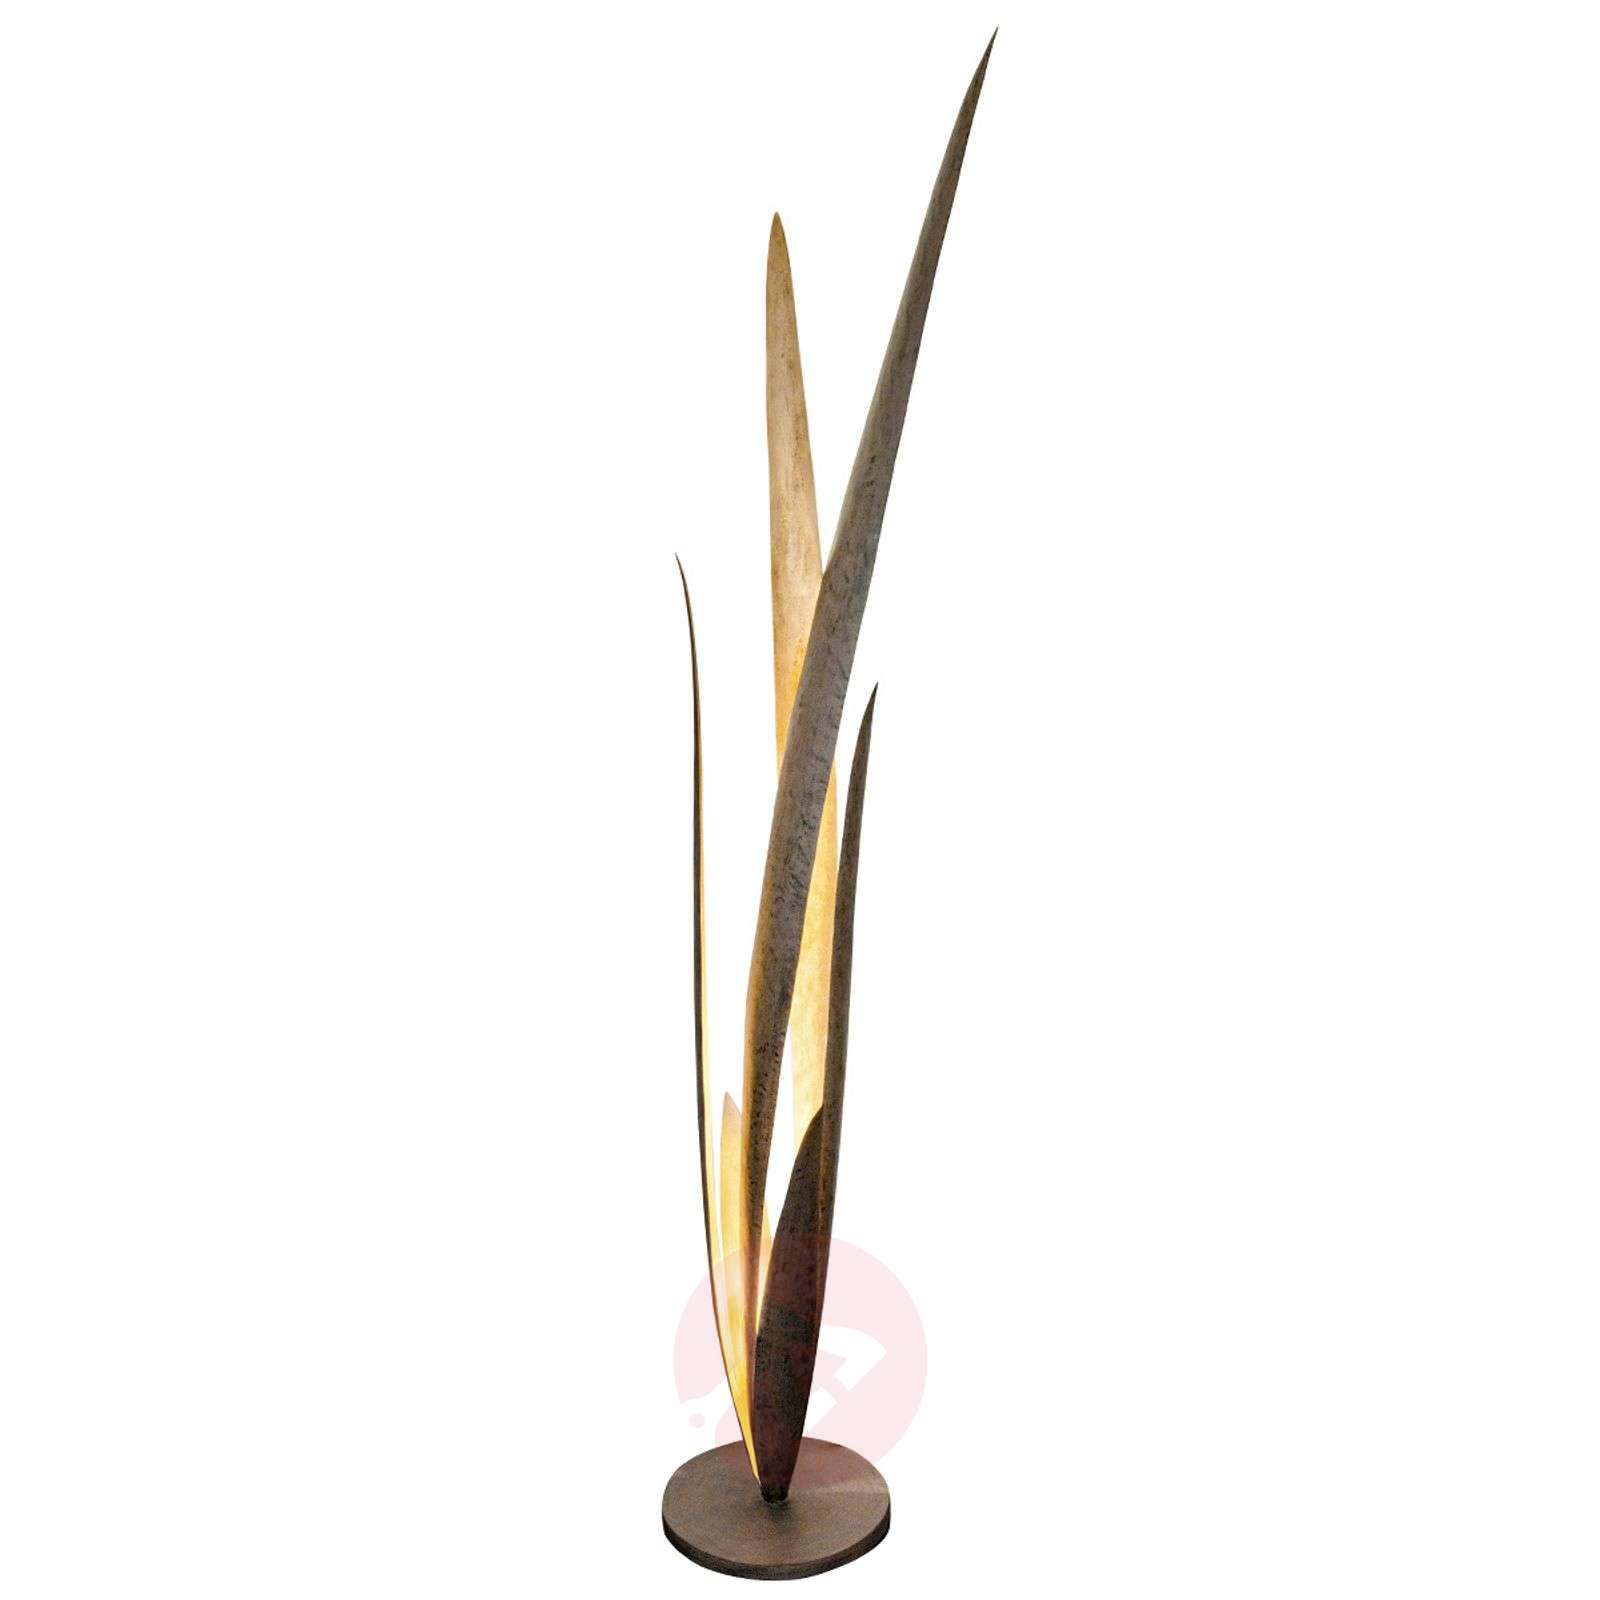 Palustre an ornamental floor lamp-4512501-01